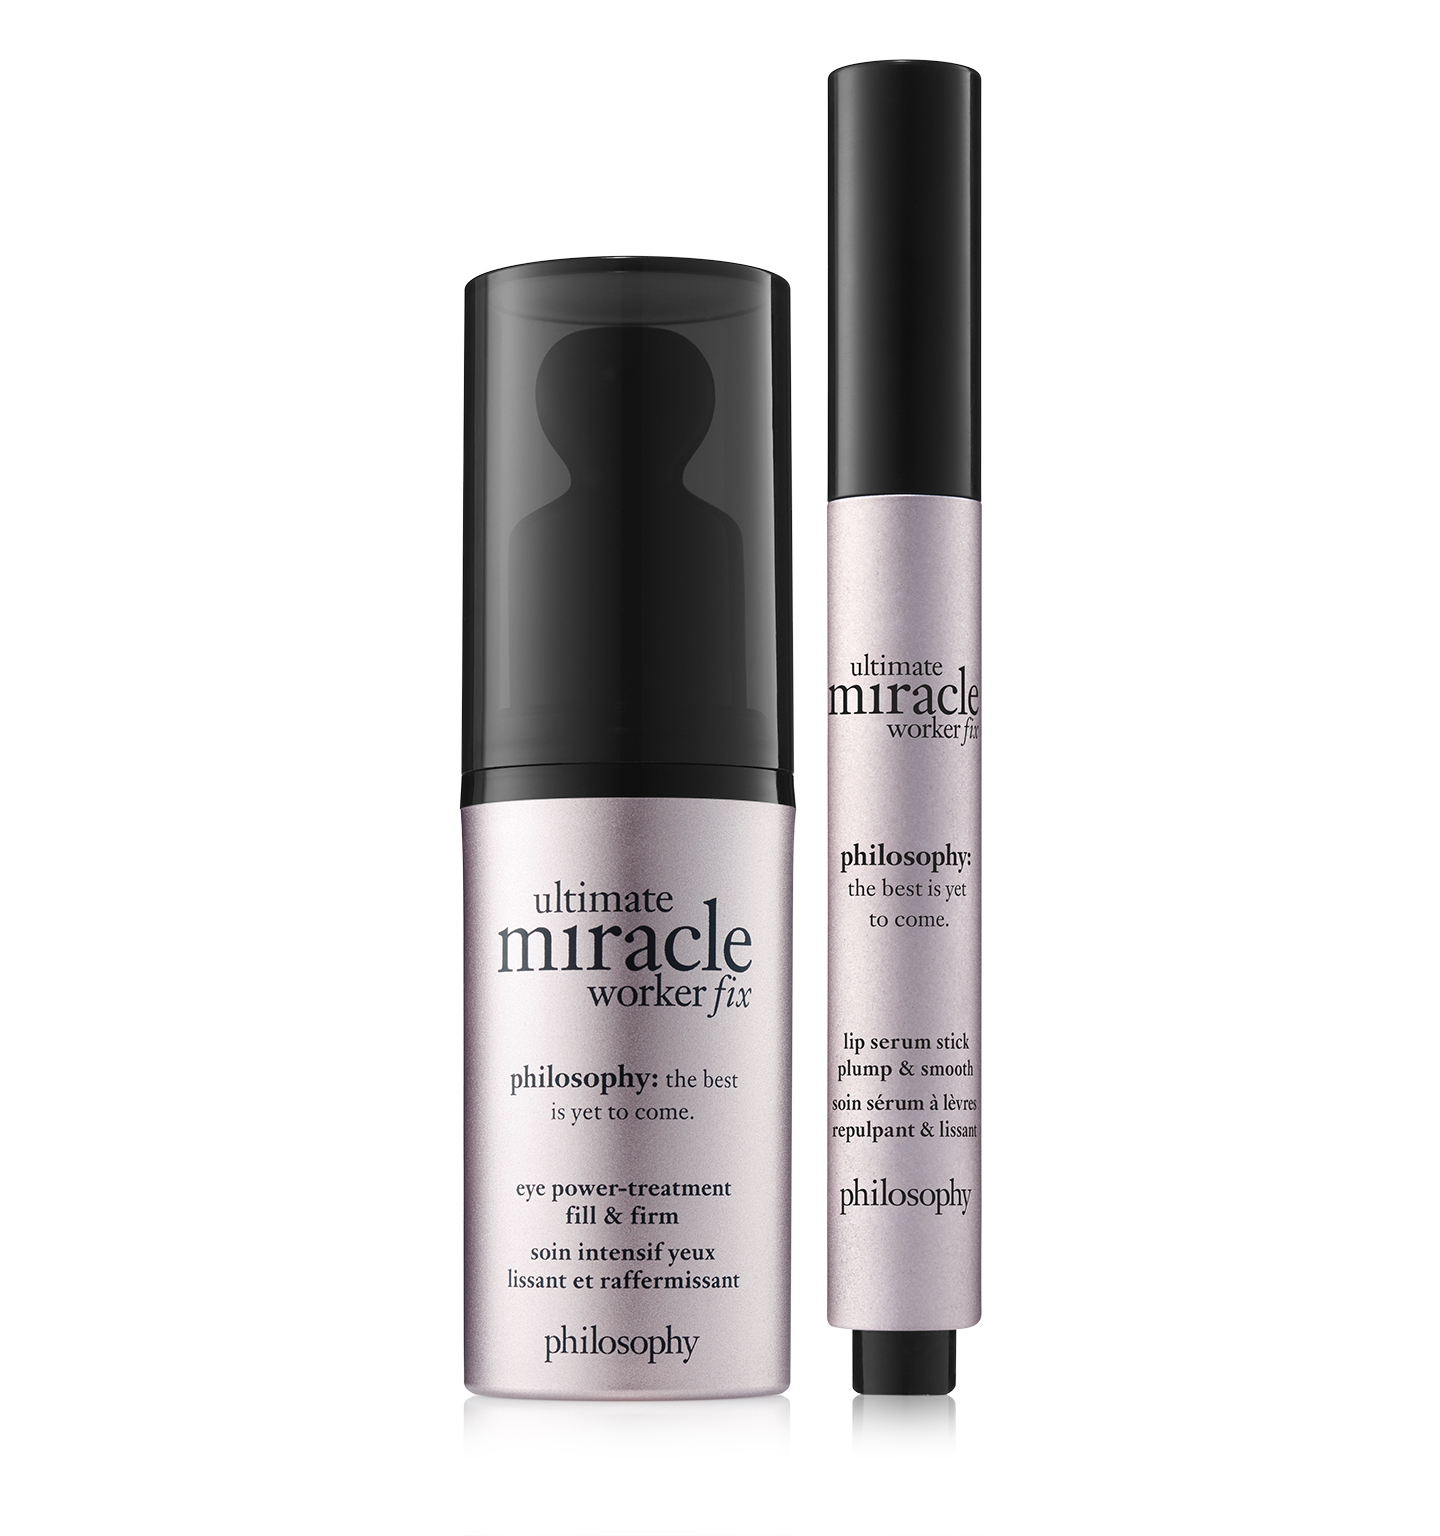 philosophy, ulimate miracle worker fix